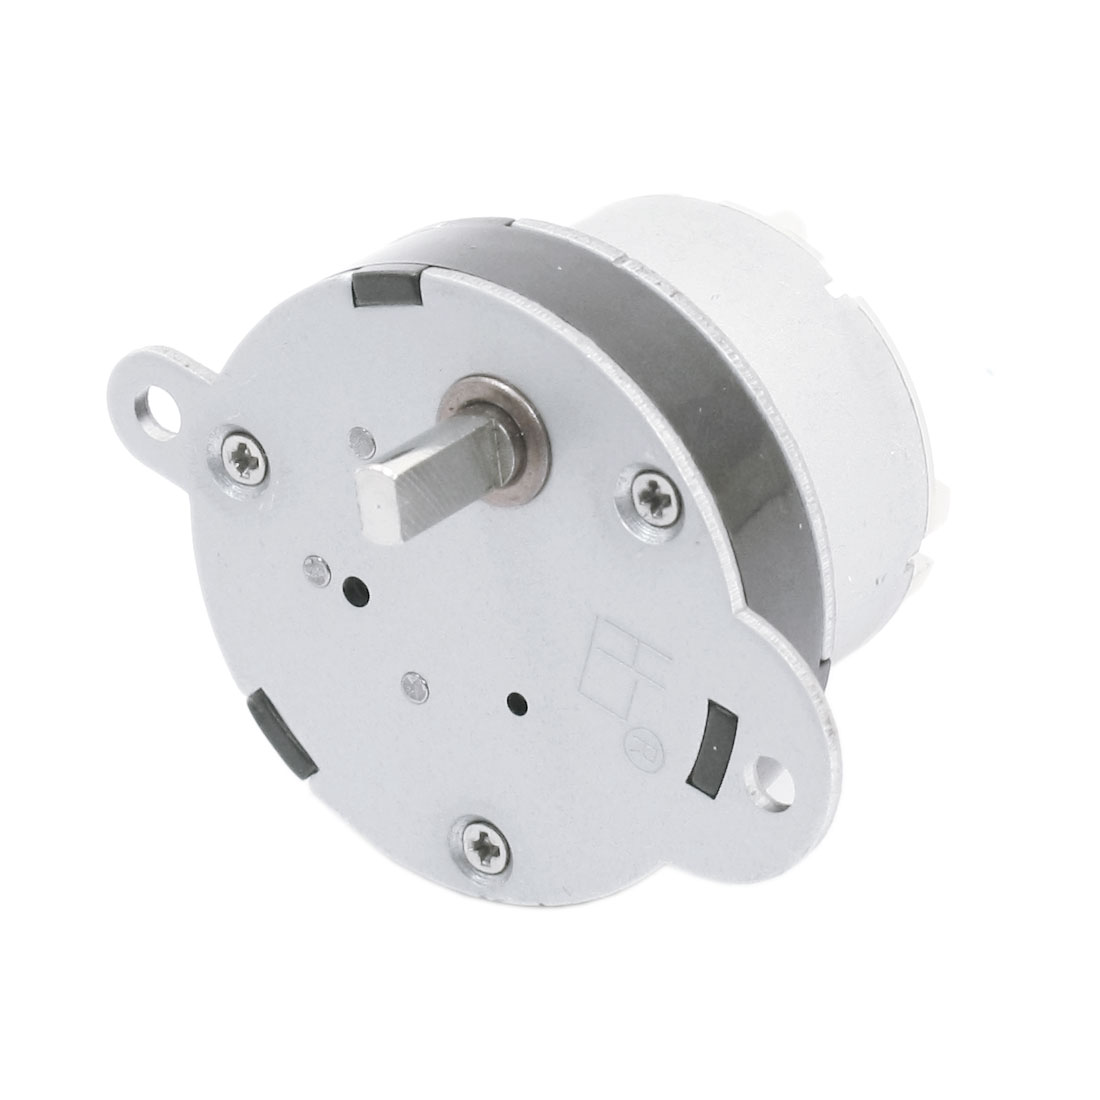 DC 6V 5mm Drive Shaft Connecting 80 r/min Output Rotary Speed Reducing Cylinder Shaped Electric Gearbox Motor